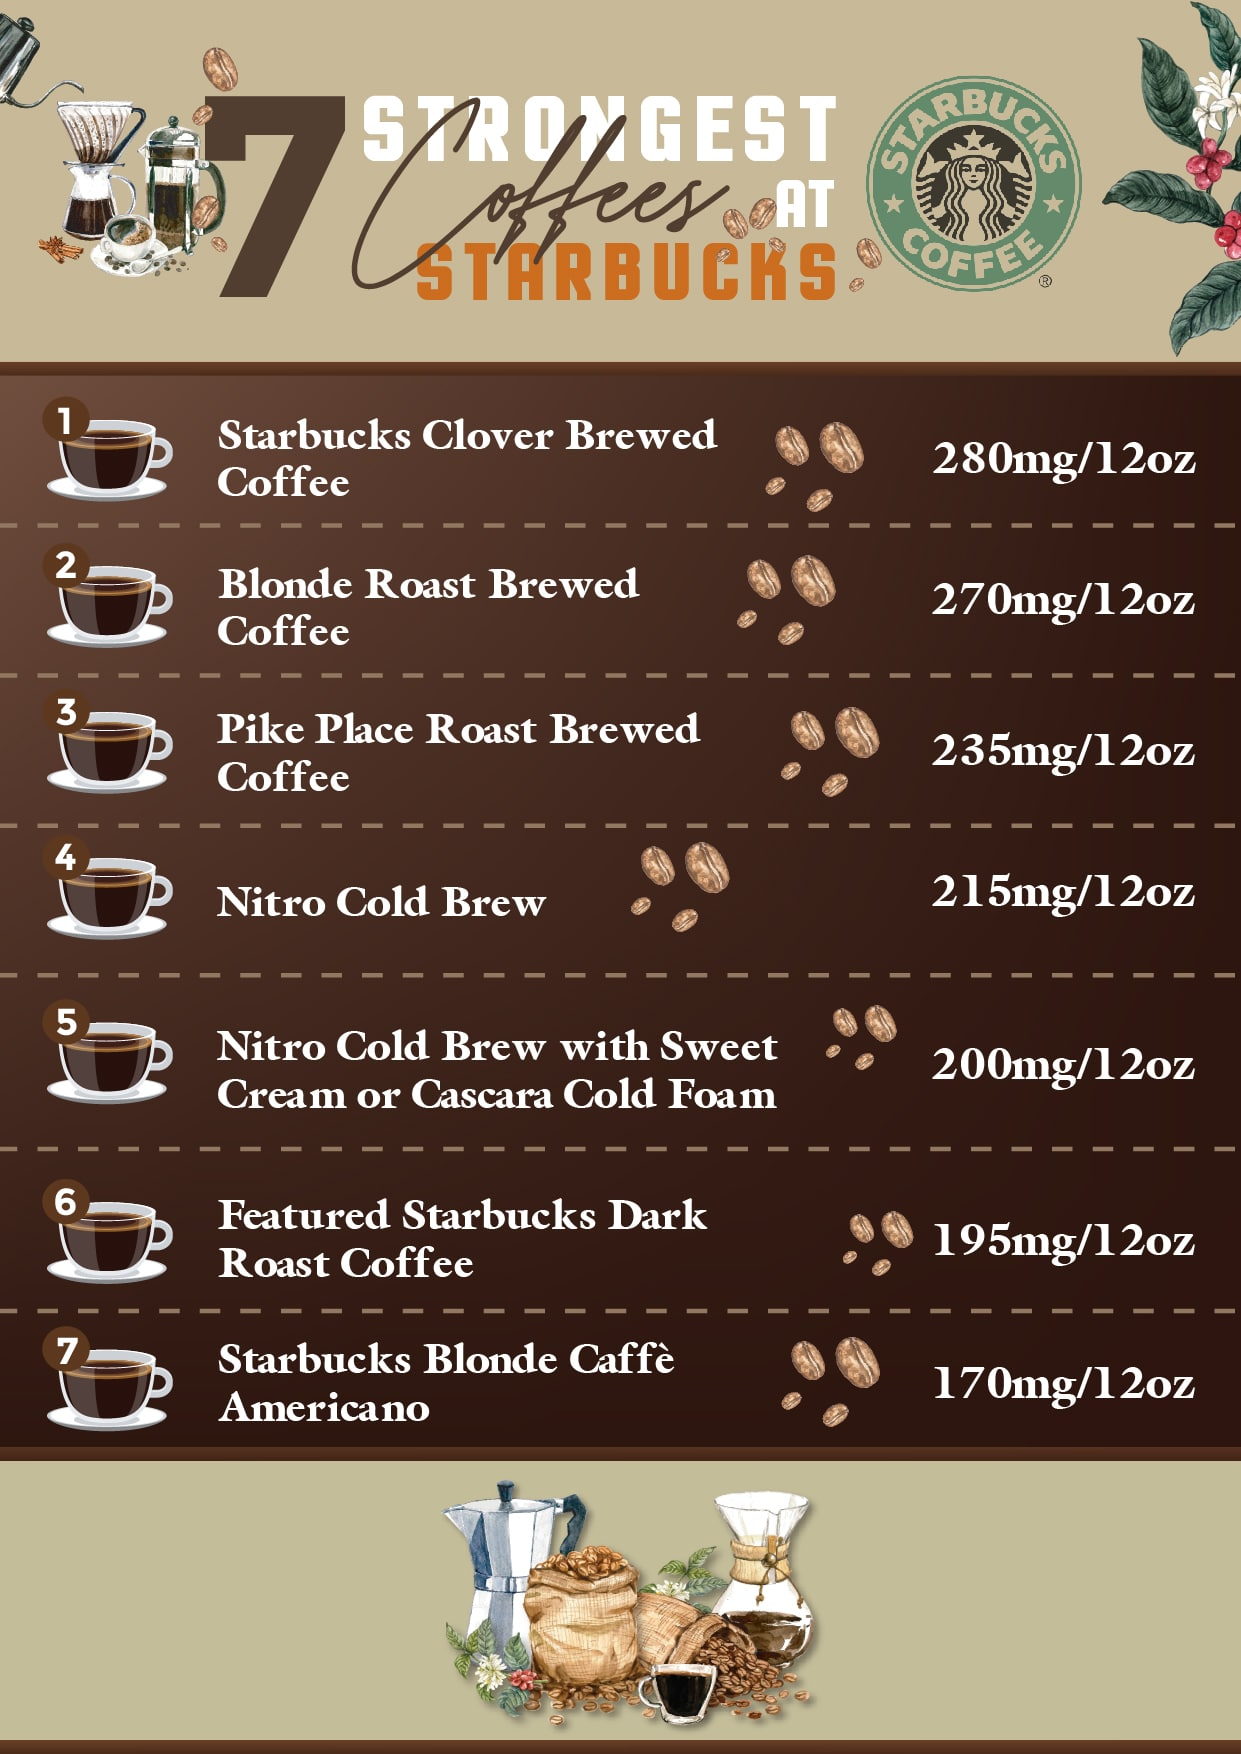 7 strongest coffees at Starbucks